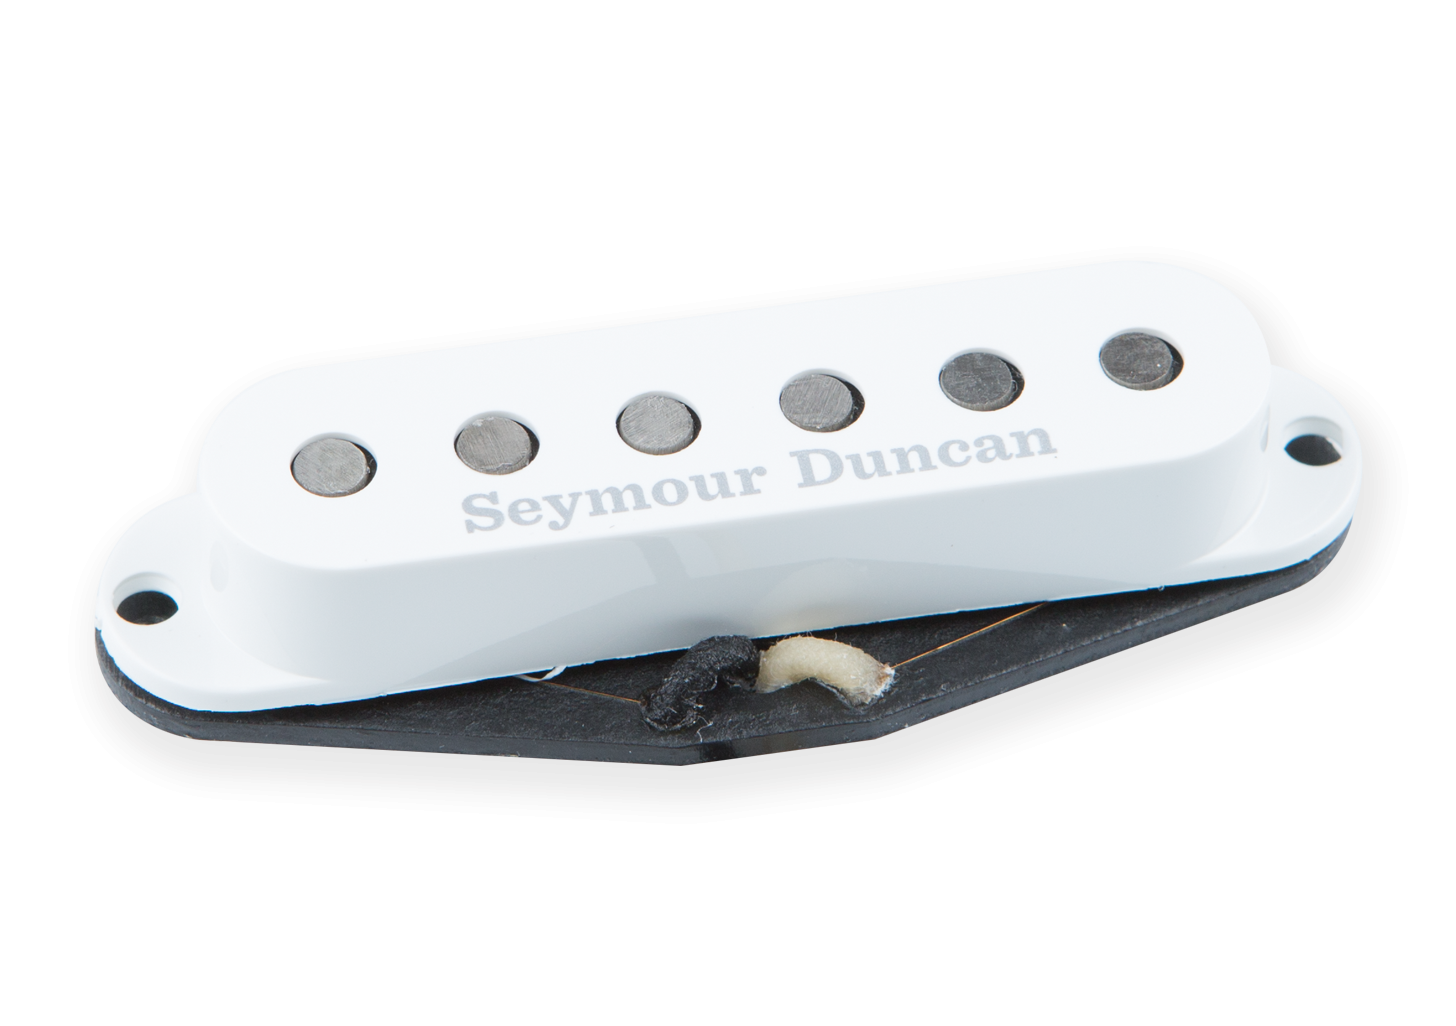 Seymour Duncan Alnico II Pro Flat Strat APS-2M RW/RP Middle